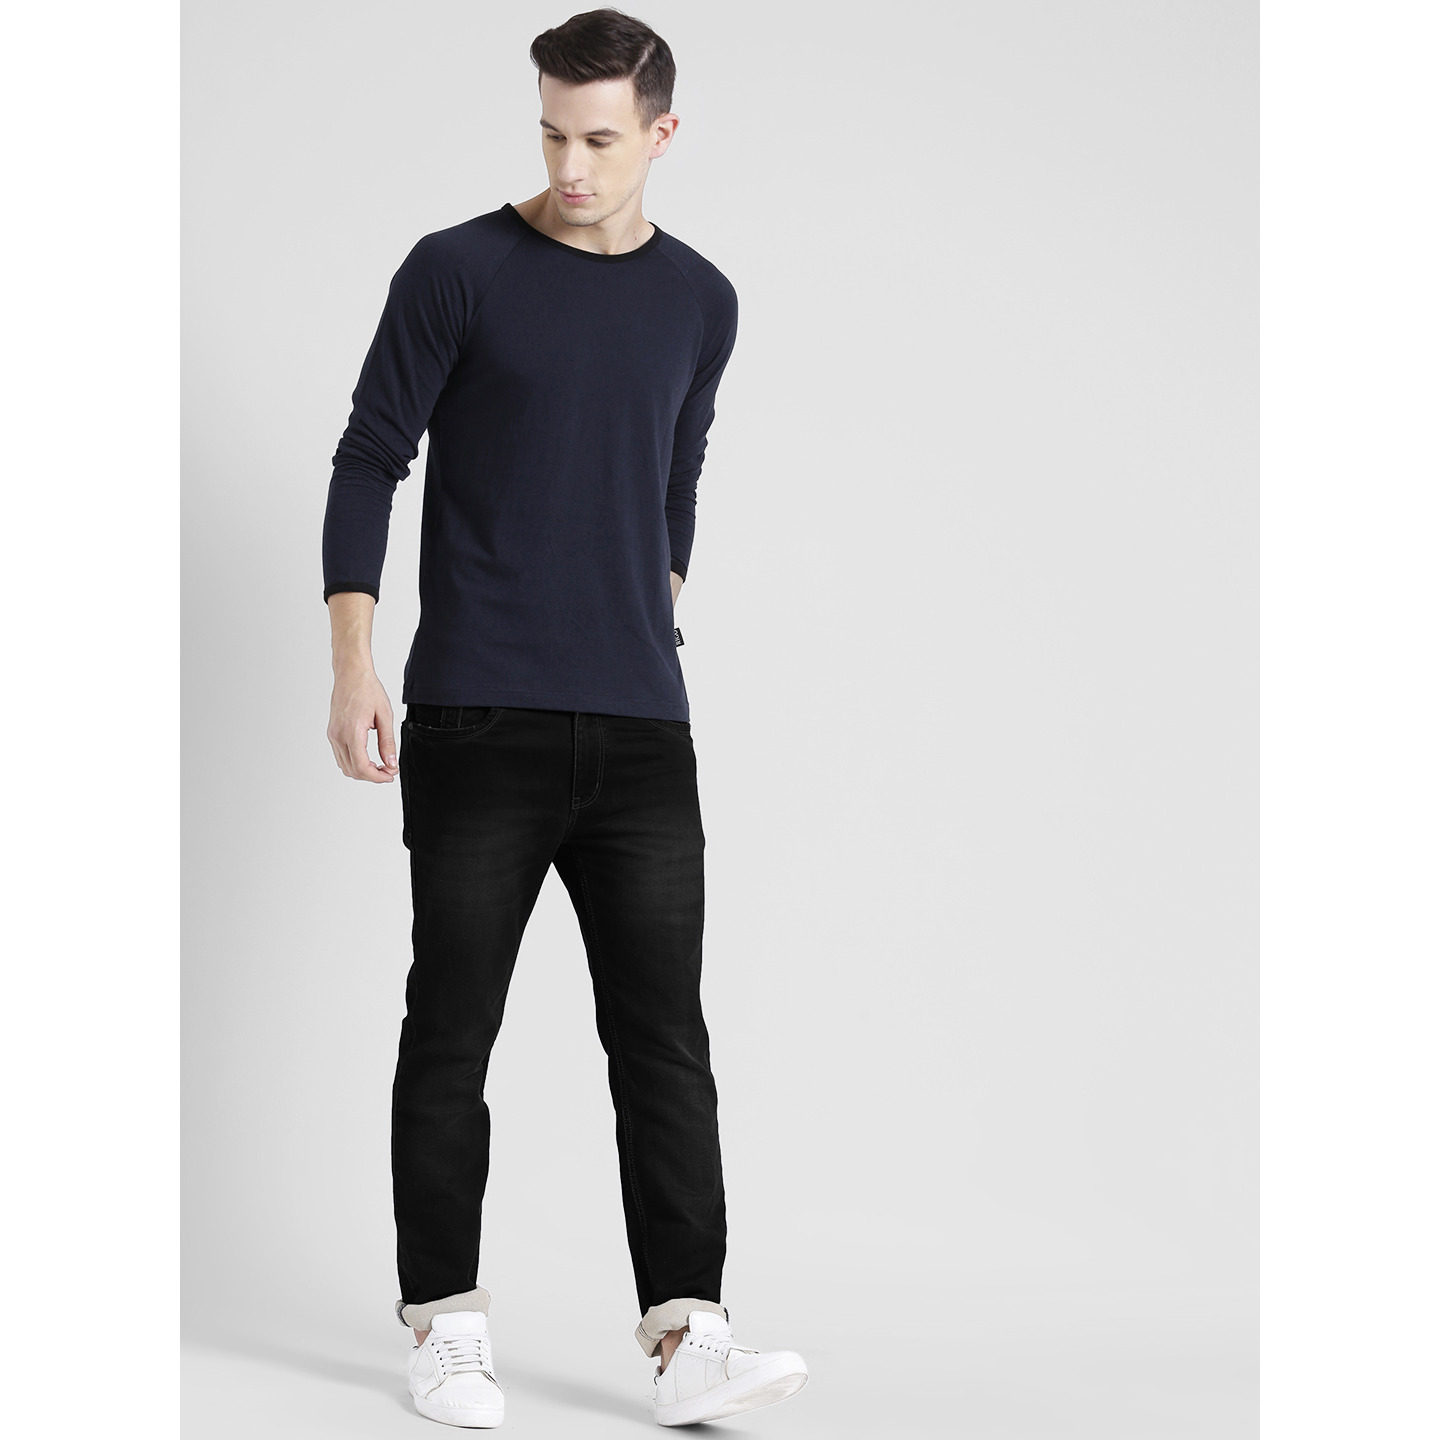 Rigo Navy Black Stripe Raglan Full Sleeve T-Shirt For Men (Size: L)